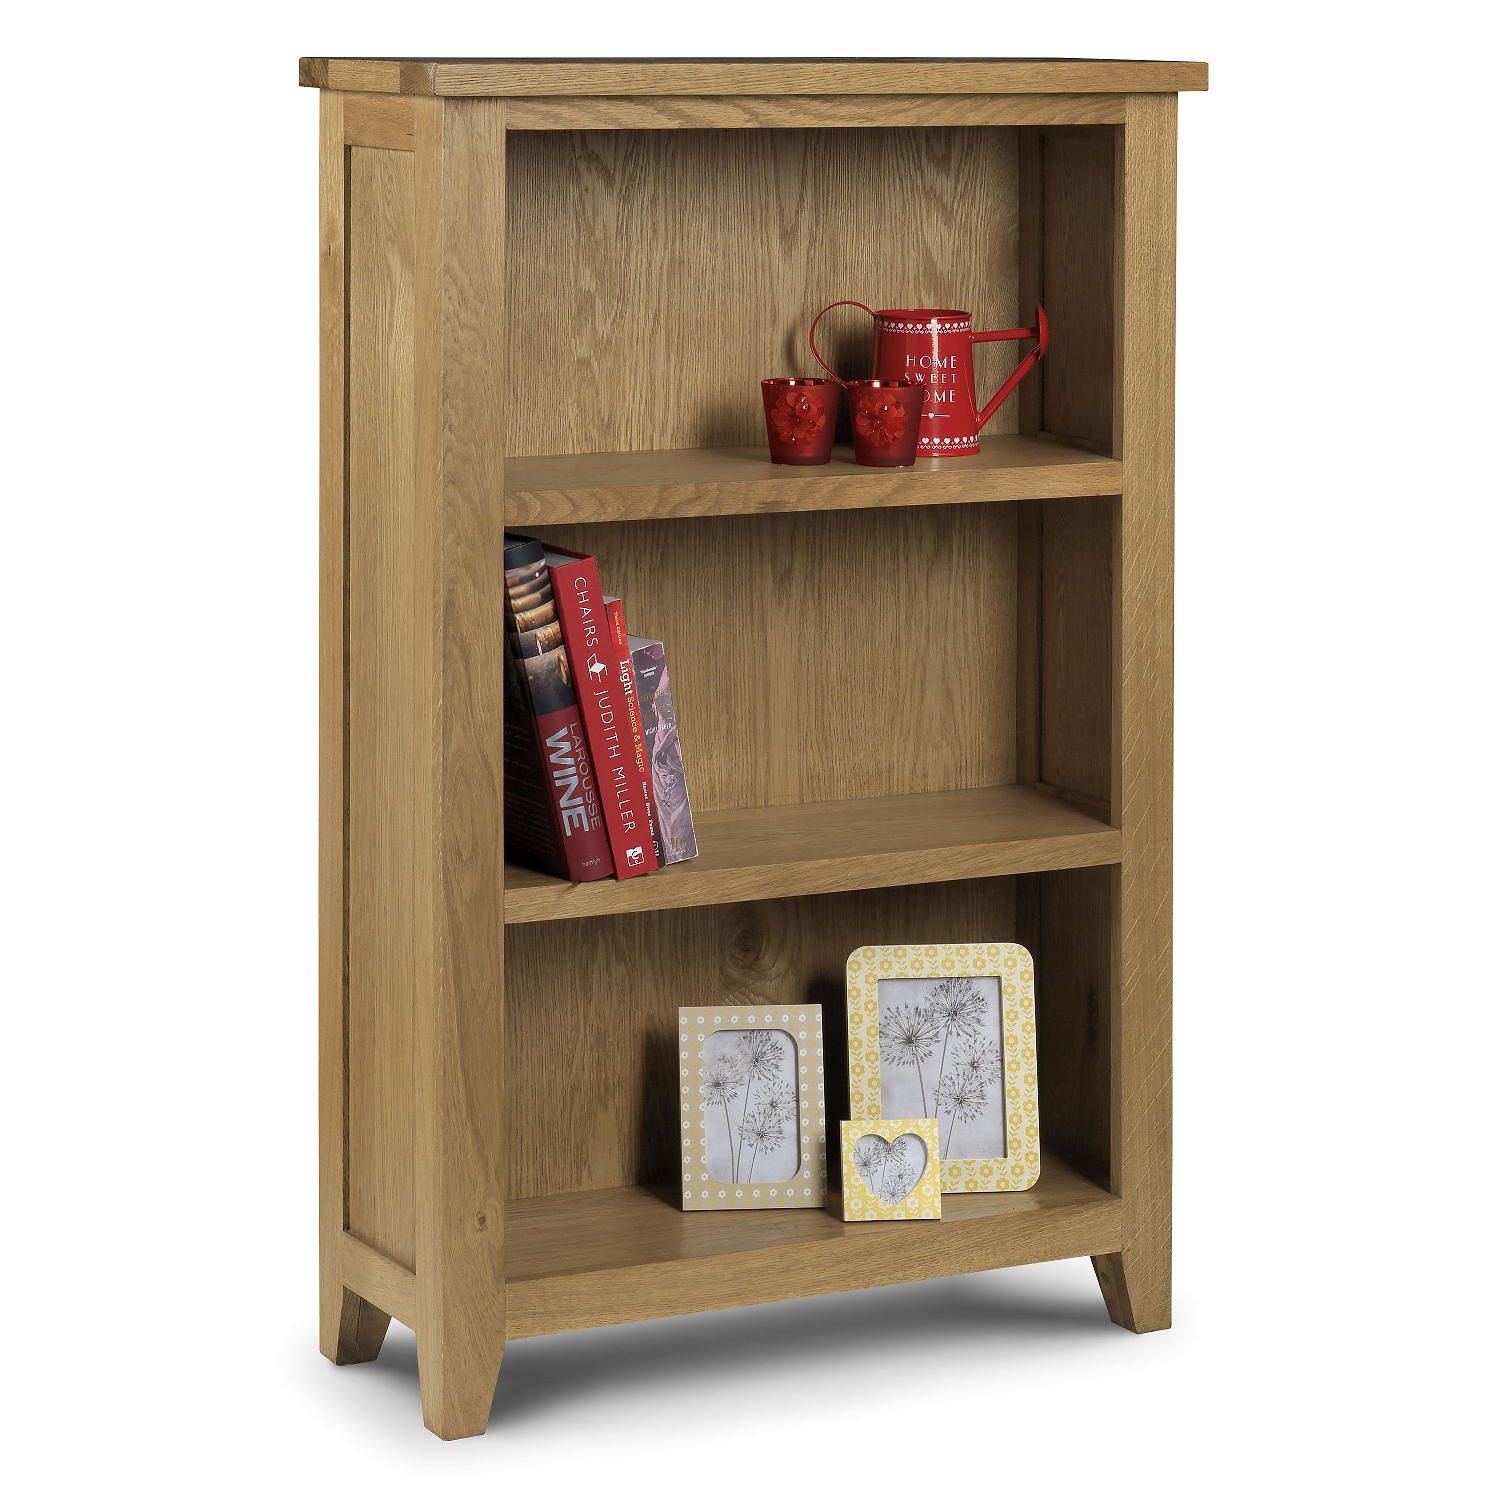 The Astoria Low Bookcase is a classically styled bookcase constructed from  solid American White Oak in a beautiful waxed finish  This bookcase is  perfect. Furniture Store   Swadlincote   Roger James Furnishers   Astoria